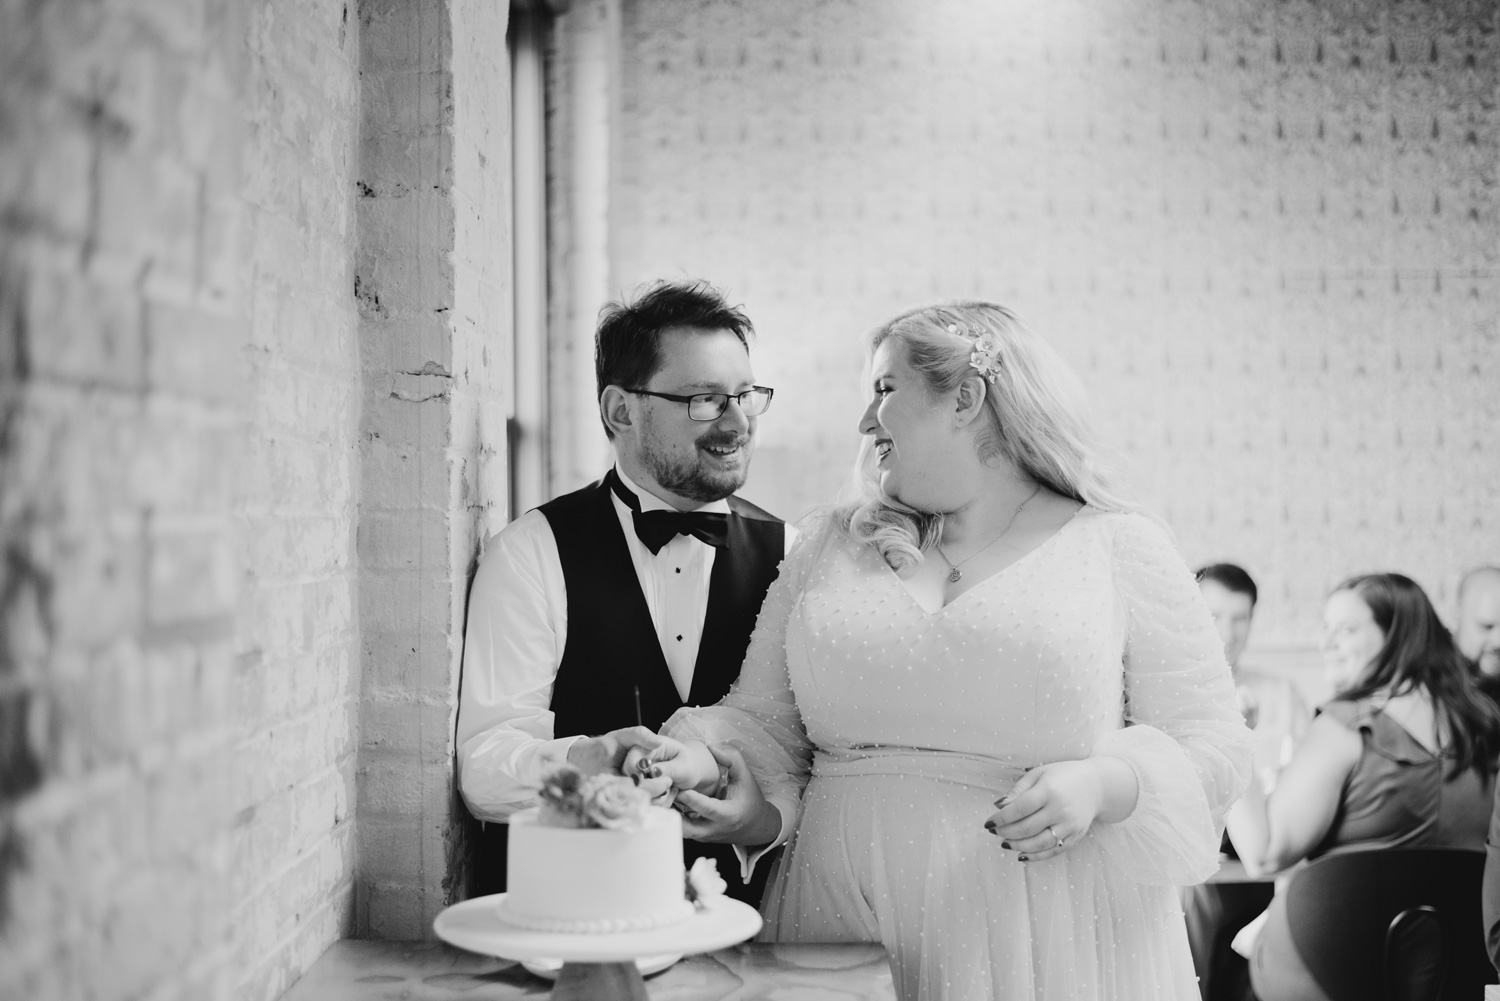 Black and white image of the bride and groom cutting their wedding cake at Bachelor Farmer, Minneapolis